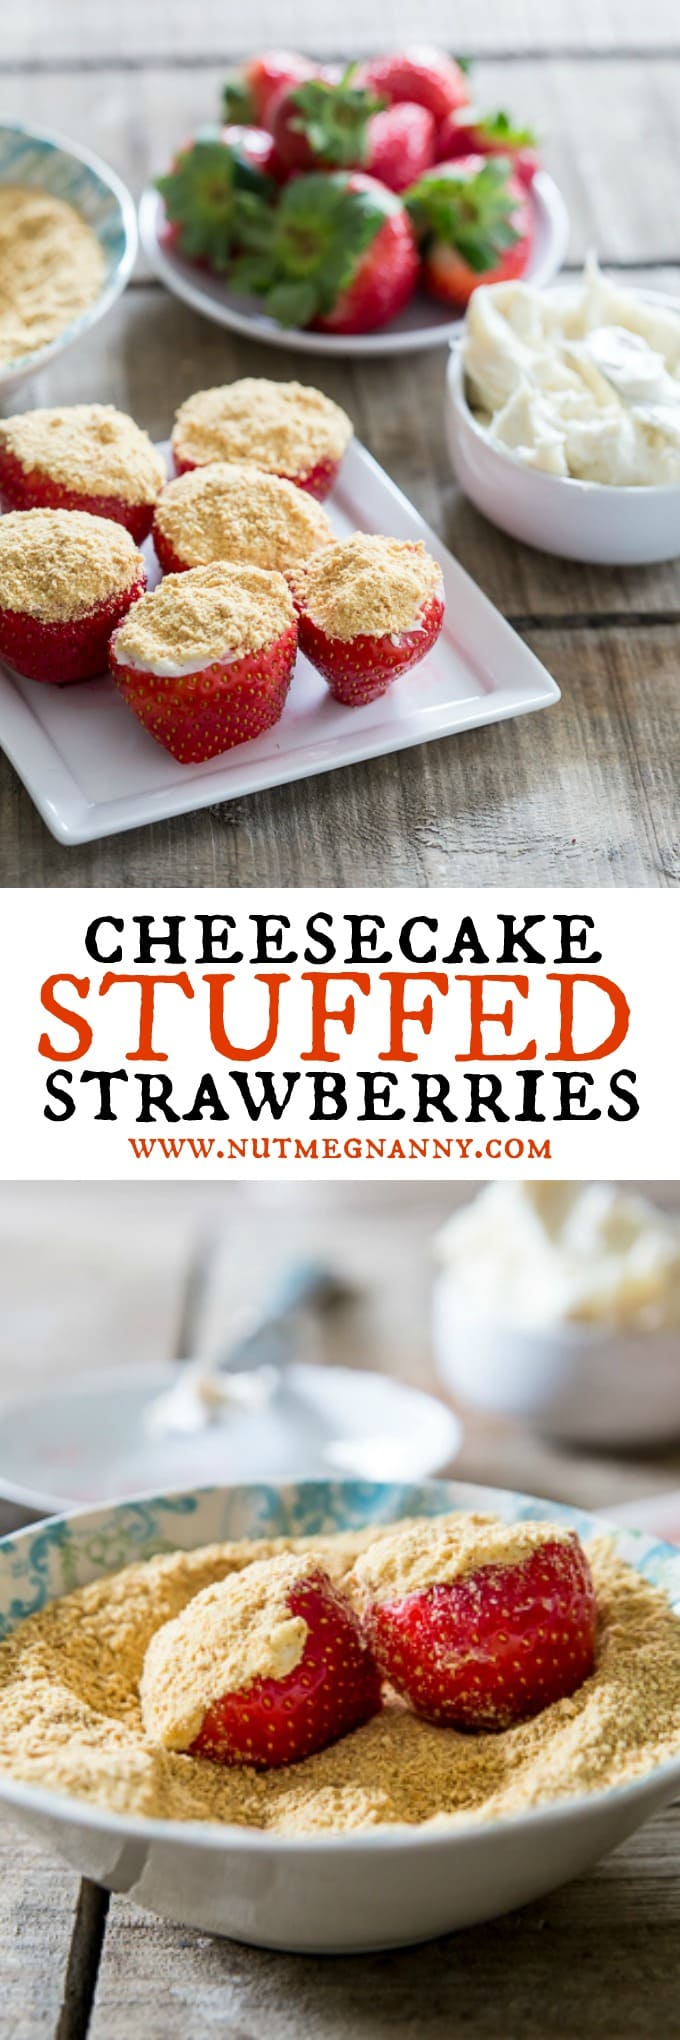 These no-bake cheesecake stuffed strawberries are simple to make and perfect for Valentine's Day. Stuffed with sweet cream cheese filling and topped with a dusting of graham cracker crumbs.